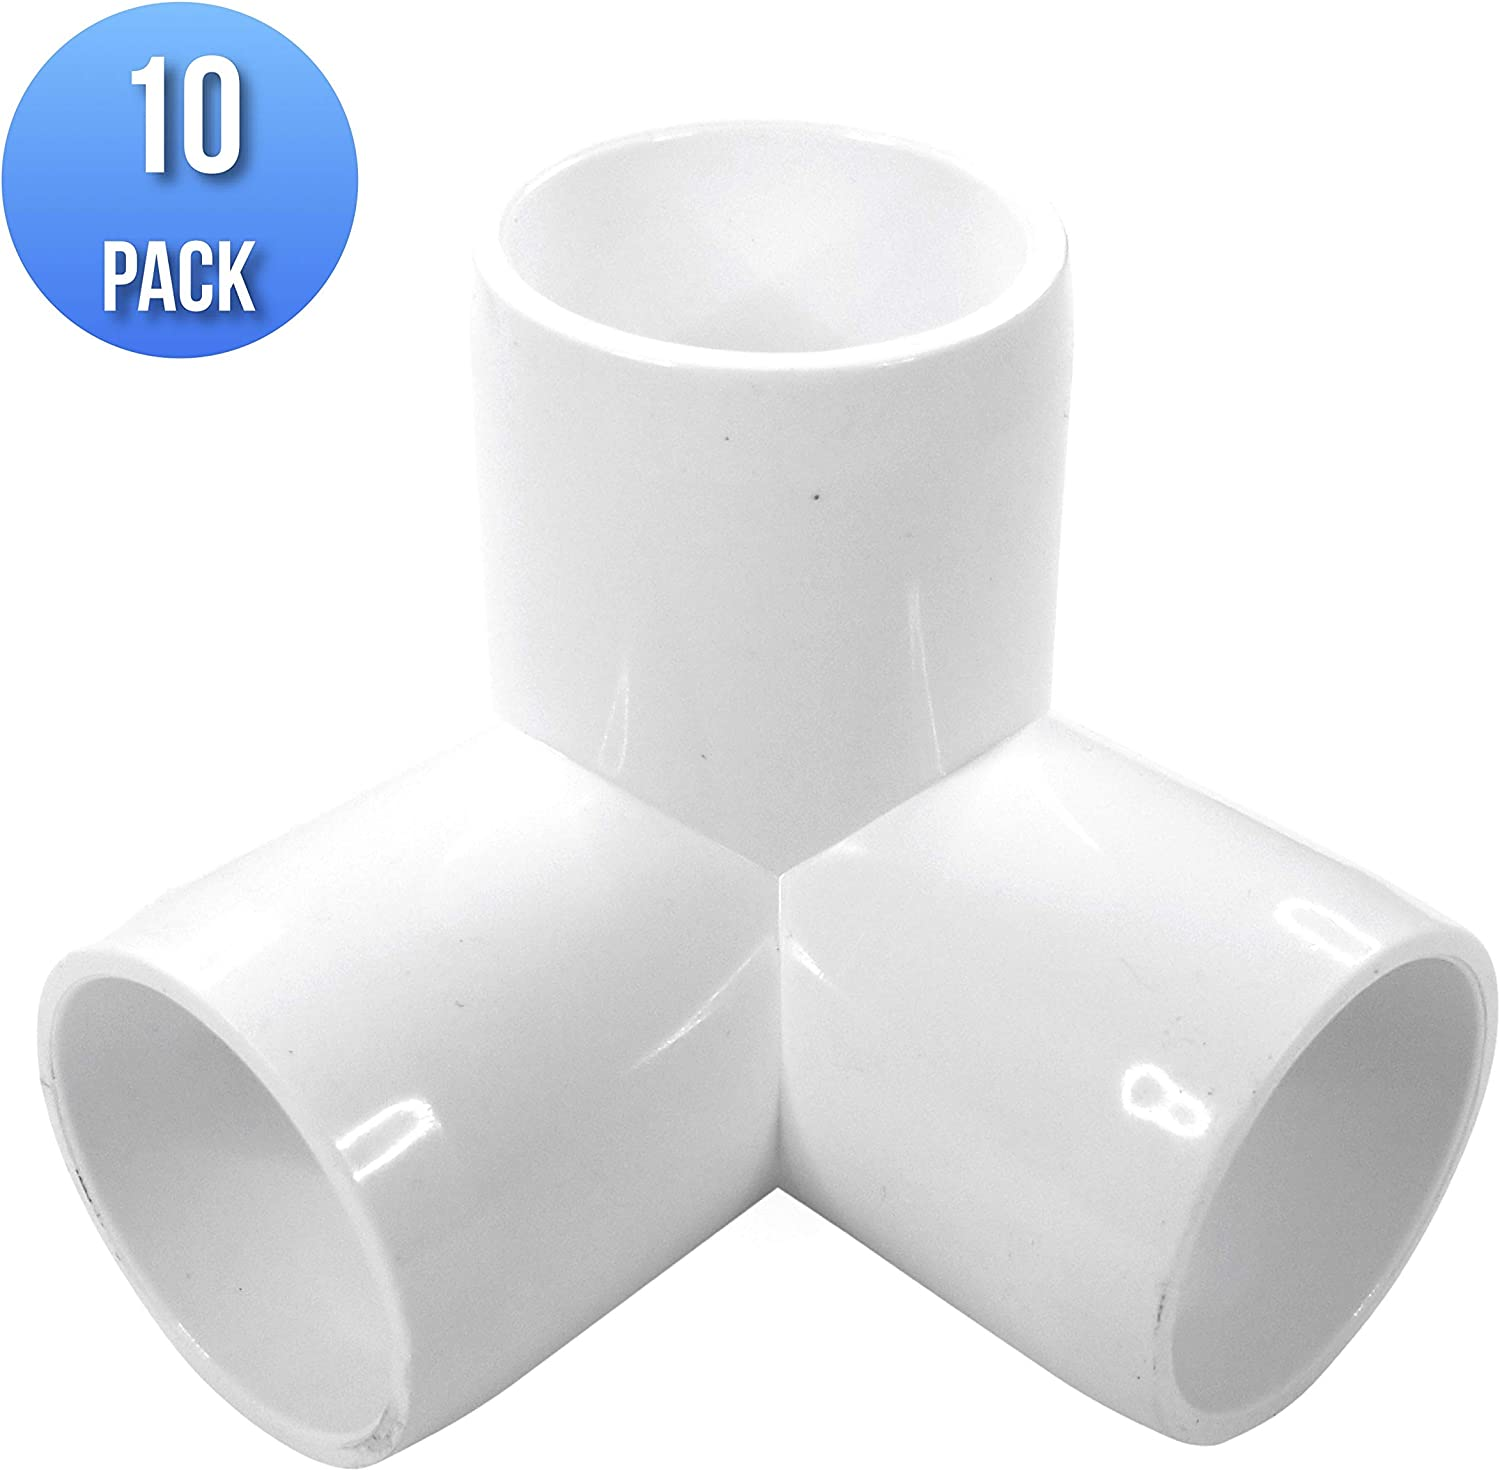 """(10-PACK) 3Way 3/4"""" inch SCH 40 PVC Fitting Elbow - Build Heavy Duty PVC Furniture - PVC Elbow Fittings (3/4 Inch)"""